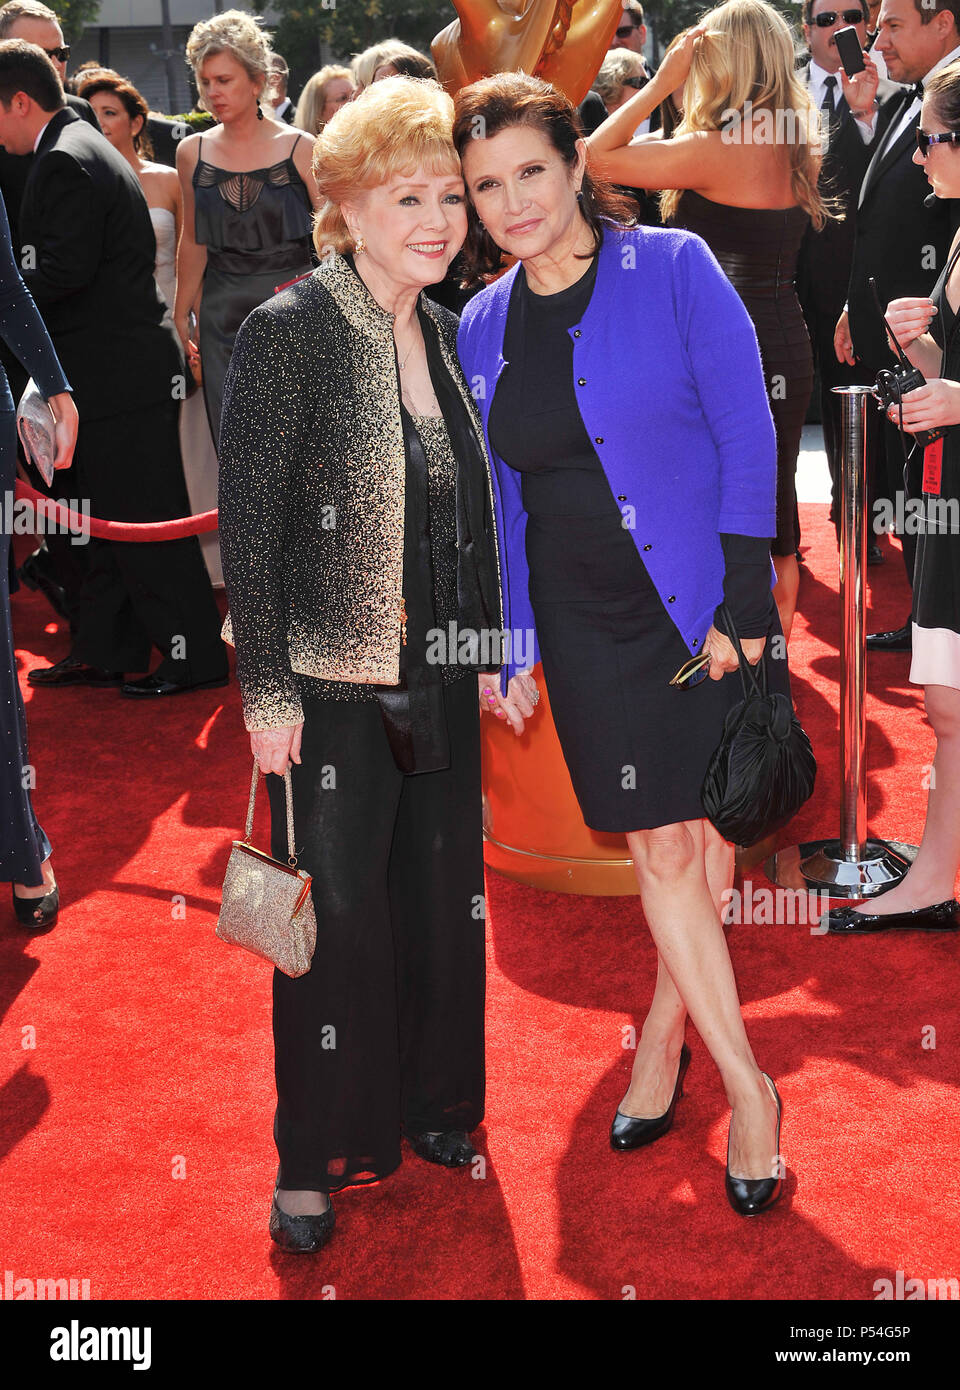 Debbie Reynolds, Carrie Fisher  at the 2011 Creative Emmy Awards at the Nokia Theatre In Los Angeles.Debbie Reynolds, Carrie Fisher _11 ------------- Red Carpet Event, Vertical, USA, Film Industry, Celebrities,  Photography, Bestof, Arts Culture and Entertainment, Topix Celebrities fashion /  Vertical, Best of, Event in Hollywood Life - California,  Red Carpet and backstage, USA, Film Industry, Celebrities,  movie celebrities, TV celebrities, Music celebrities, Photography, Bestof, Arts Culture and Entertainment,  Topix, vertical,  family from from the year , 2011, inquiry tsuni@Gamma-USA.com  - Stock Image